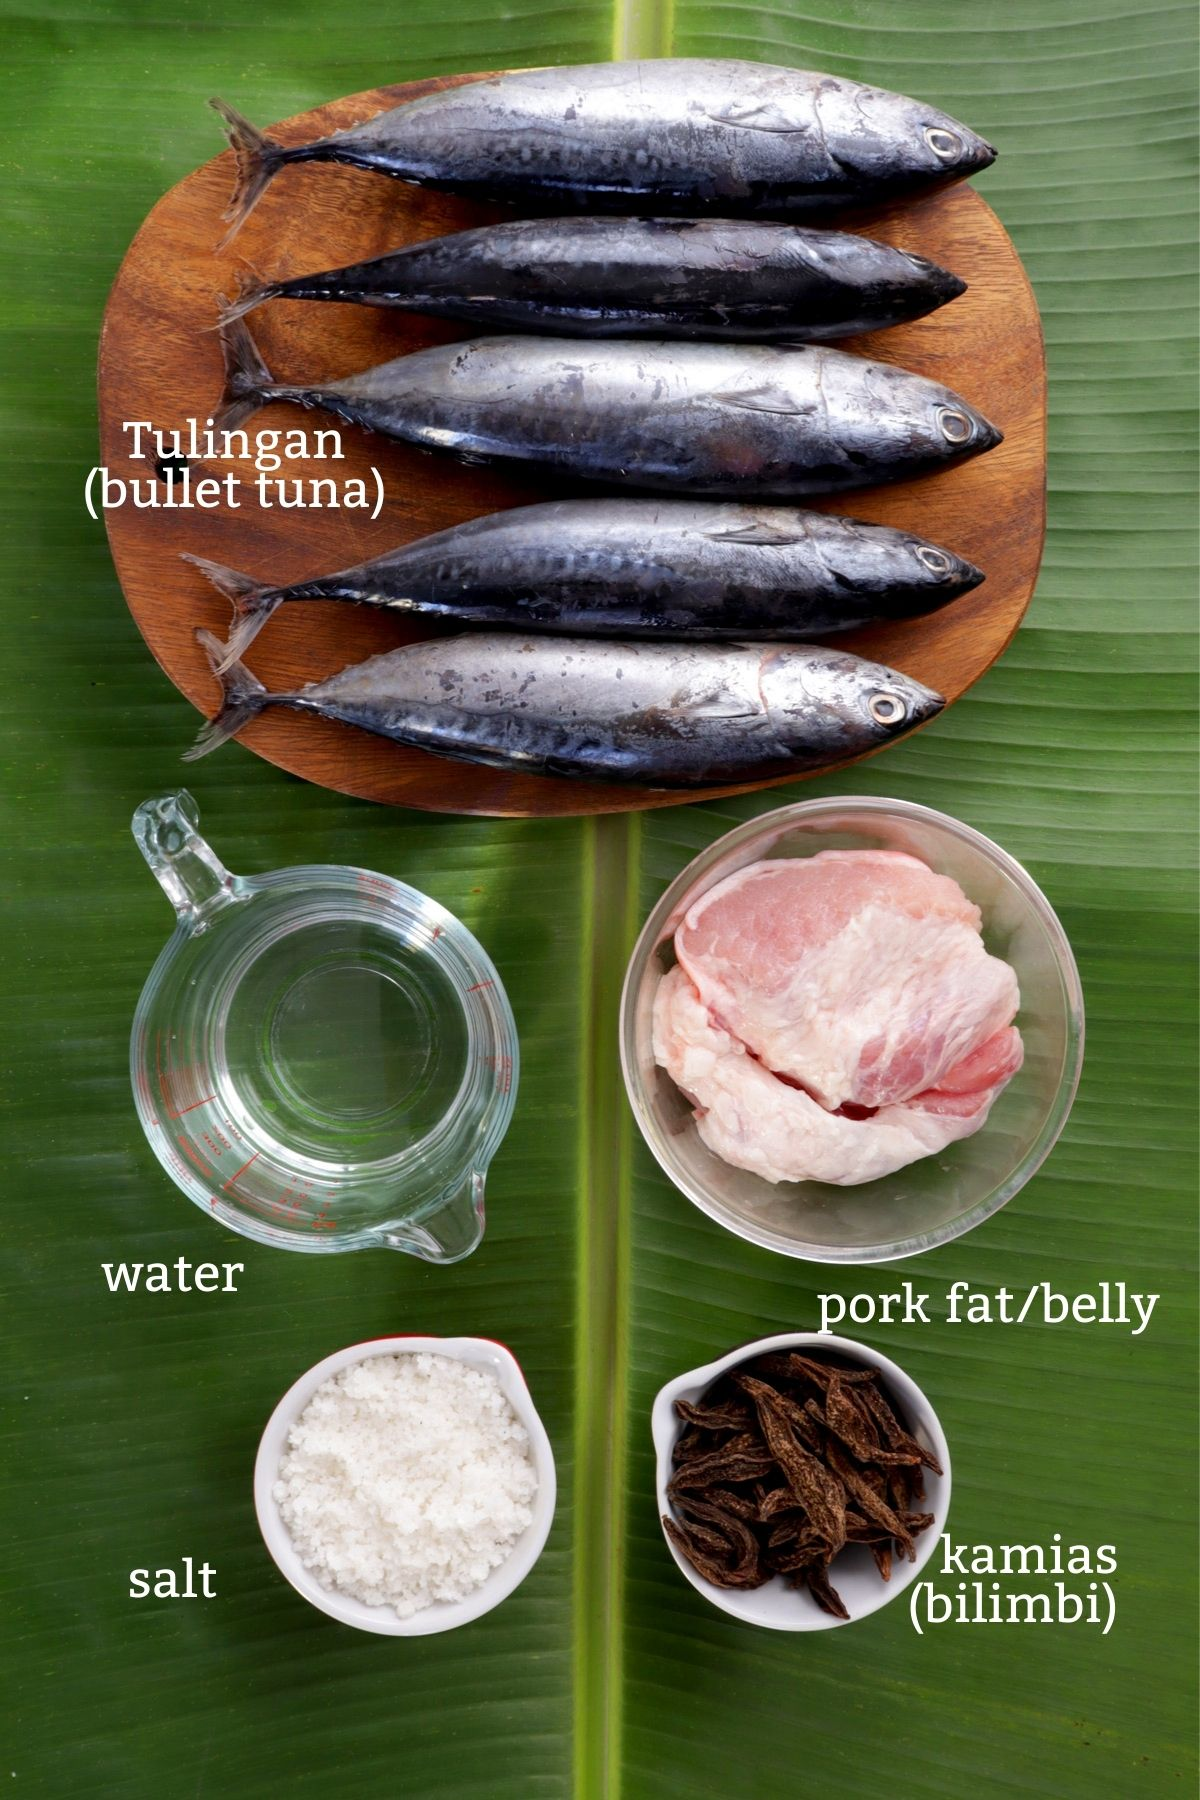 Ingredients for Sinaing na Tulingan